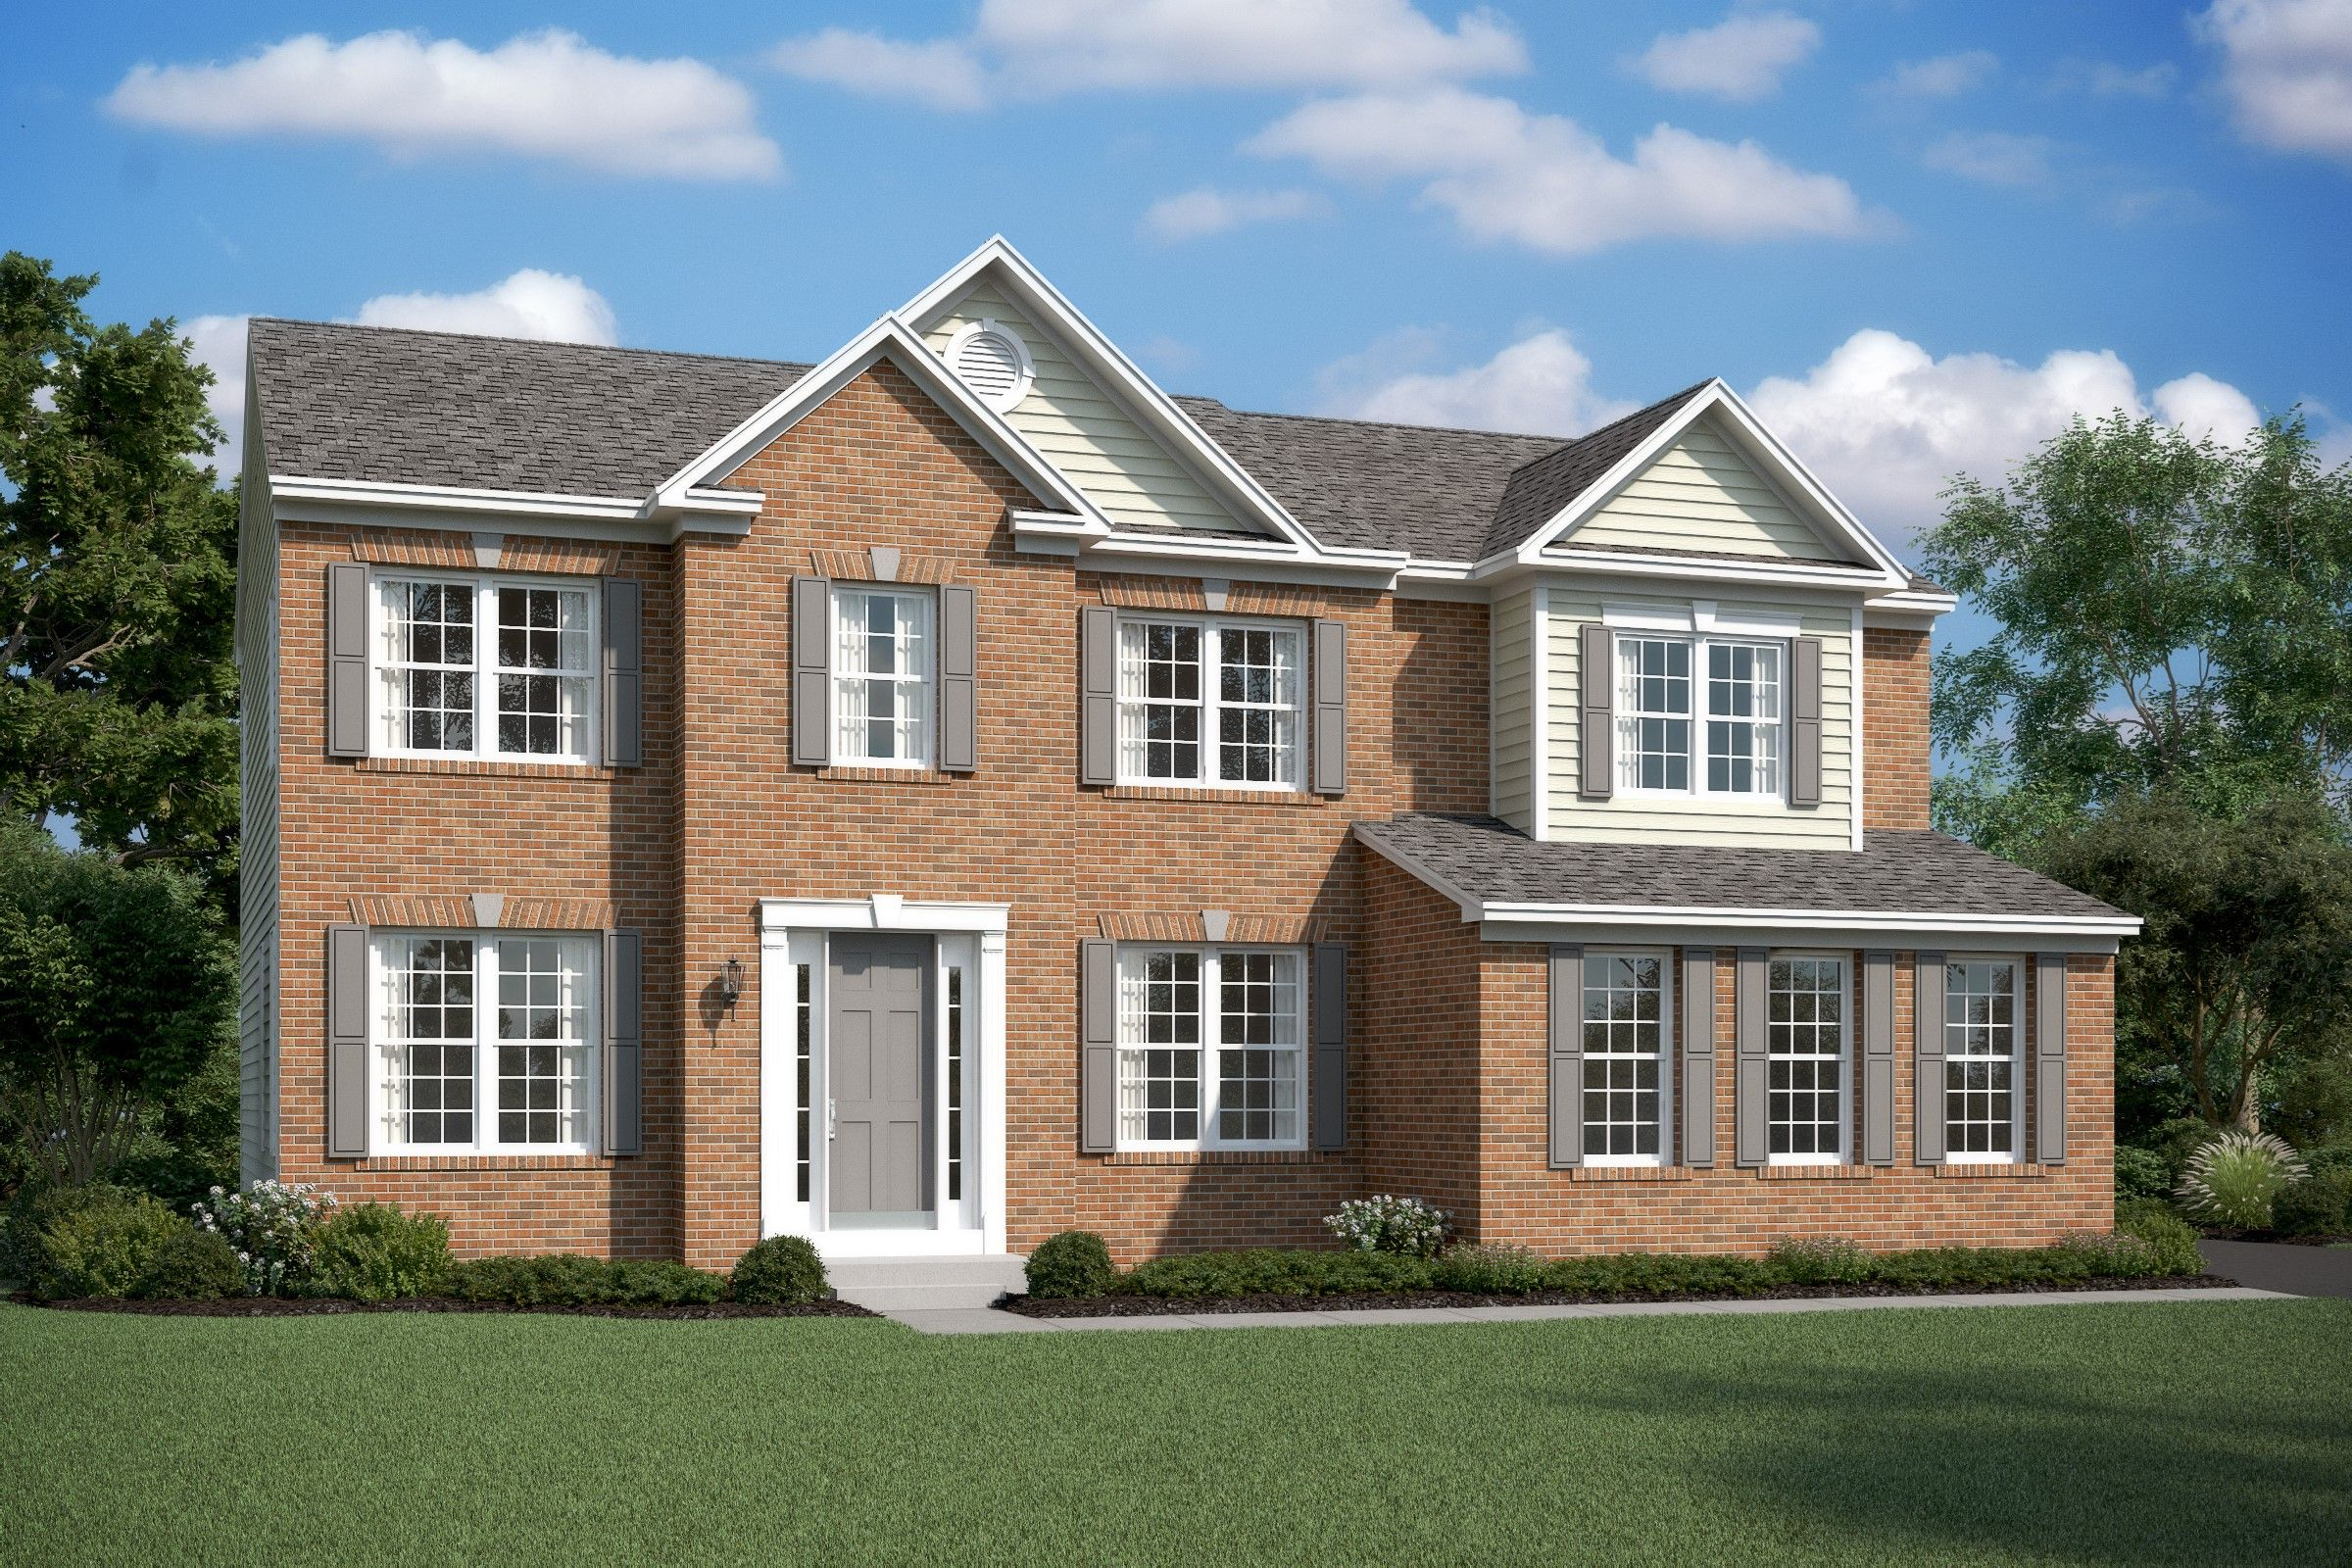 Single Family for Active at Alexander Lakes - Delaware Ii 14342 Trotters Ridge Place Nokesville, Virginia 20181 United States